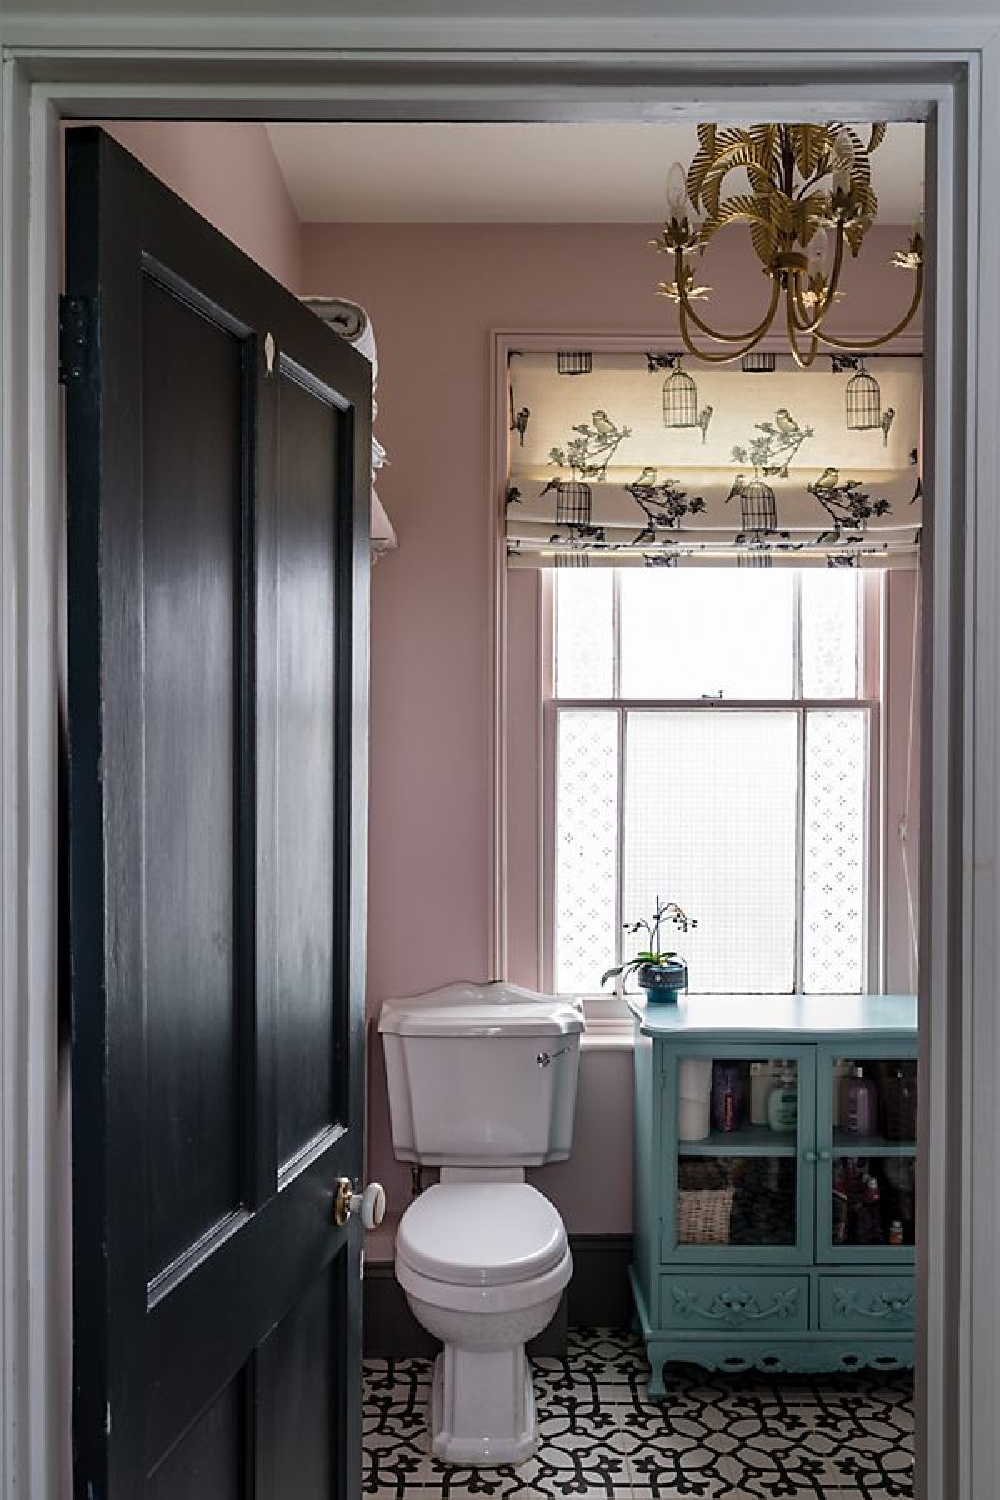 Calamine No.230 Farrow & Ball in a bathroom with freestanding teal cupboard with glass doors.